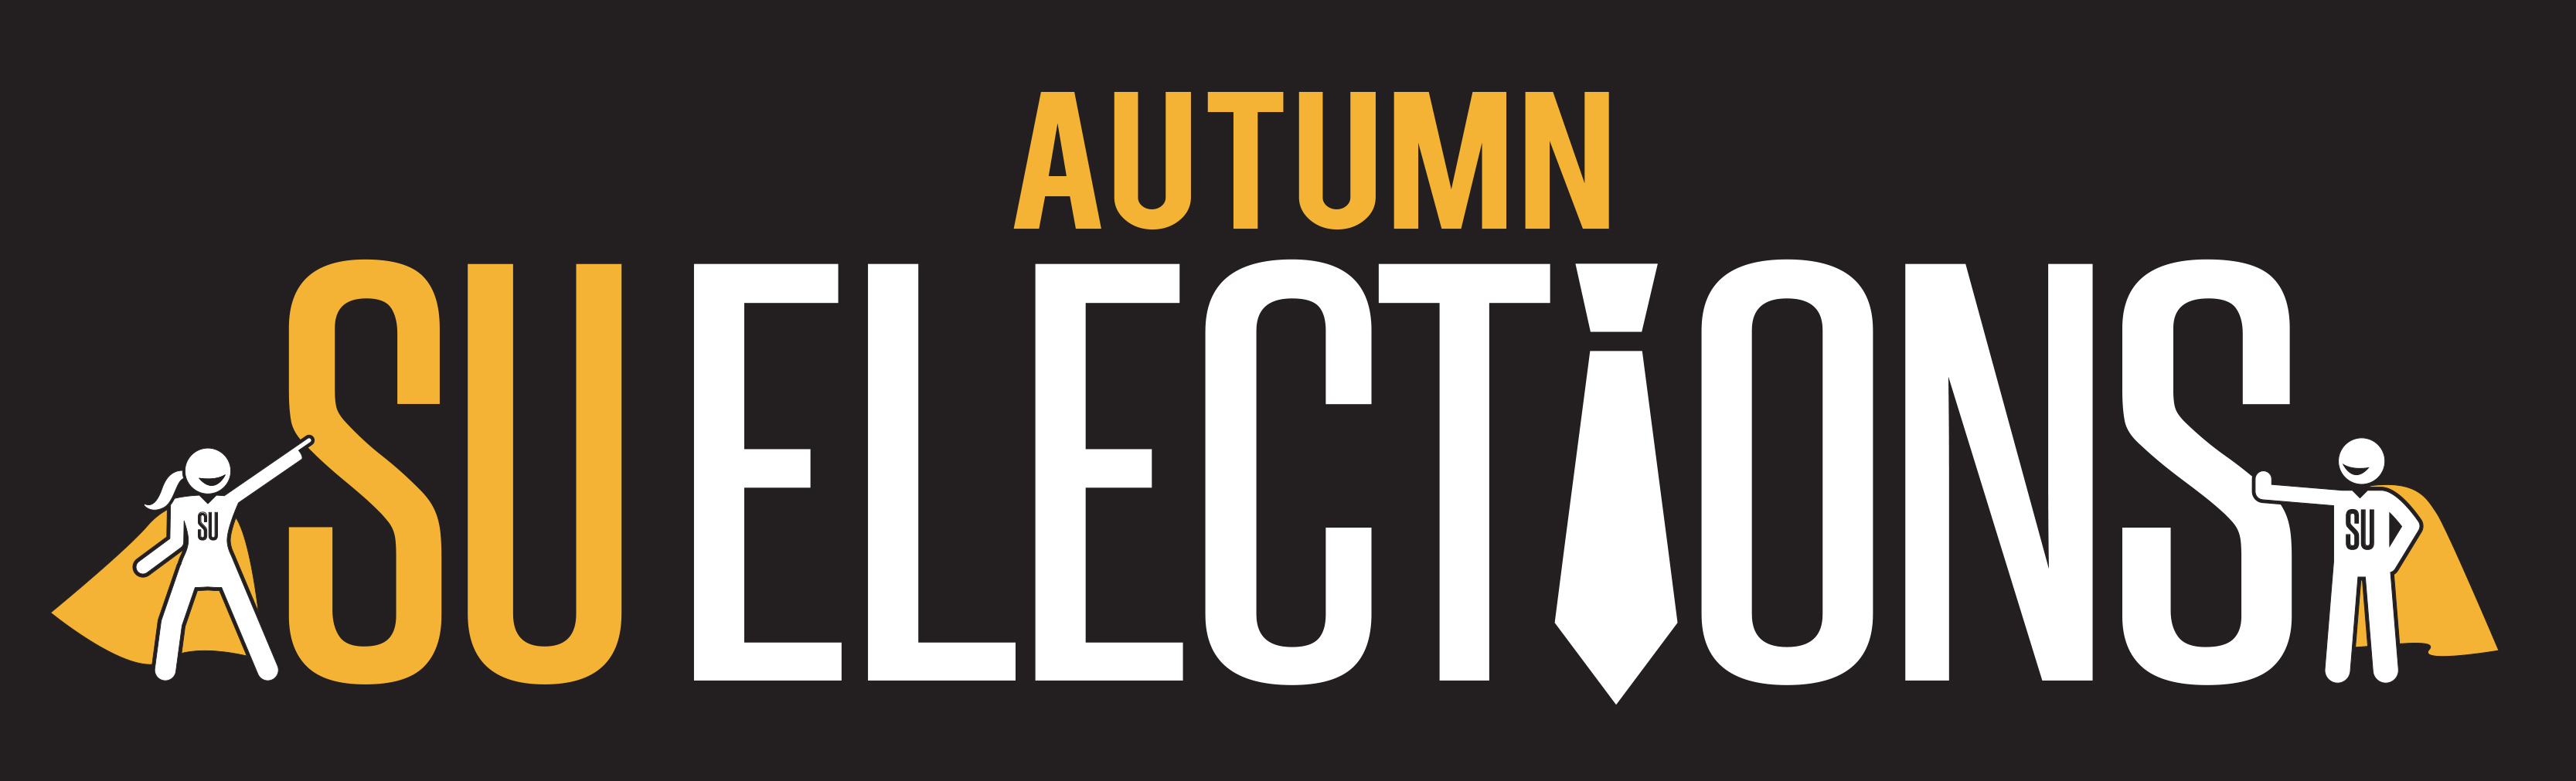 Web Banner: Autumn Elections